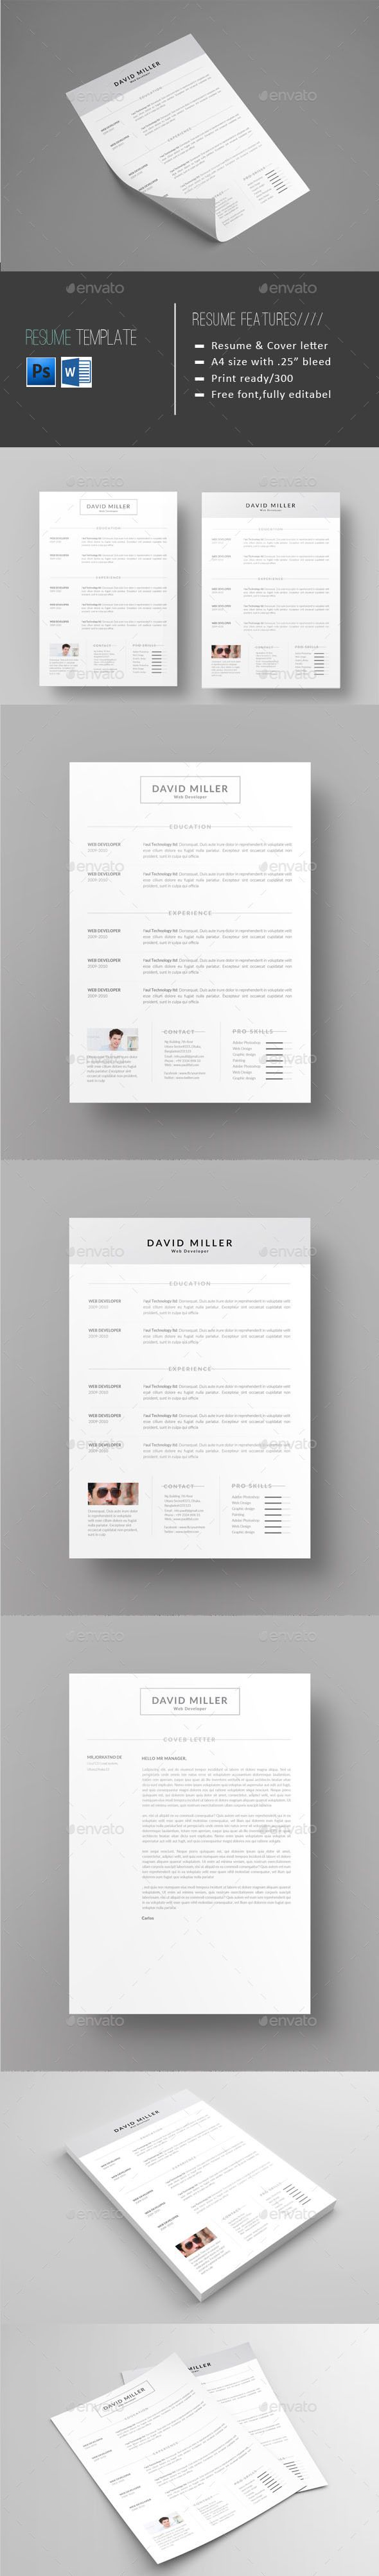 Chronological Resume Samples%0A Resume Design Template  Resumes Stationery Template PSD  Download here   https